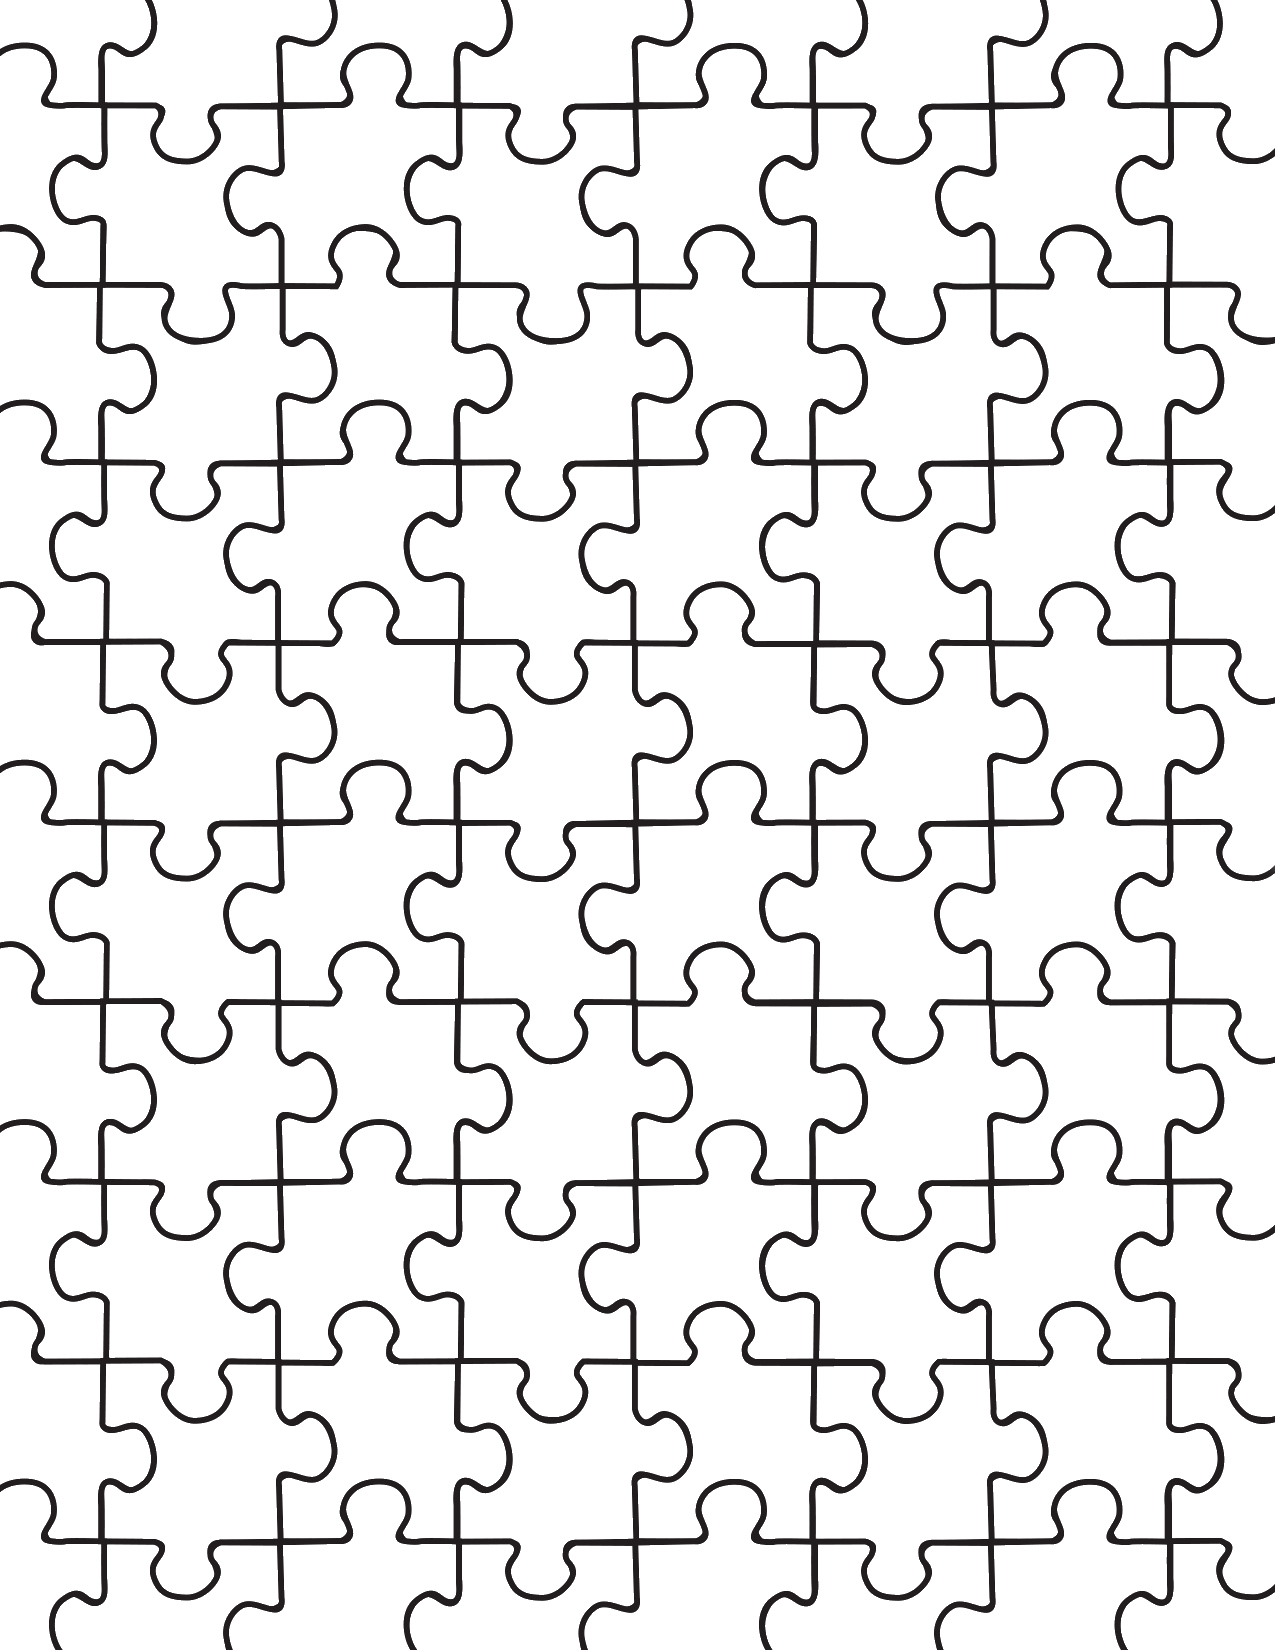 Blank Puzzle Pieces Template Awesome Printable Puzzle Pieces Template Decor